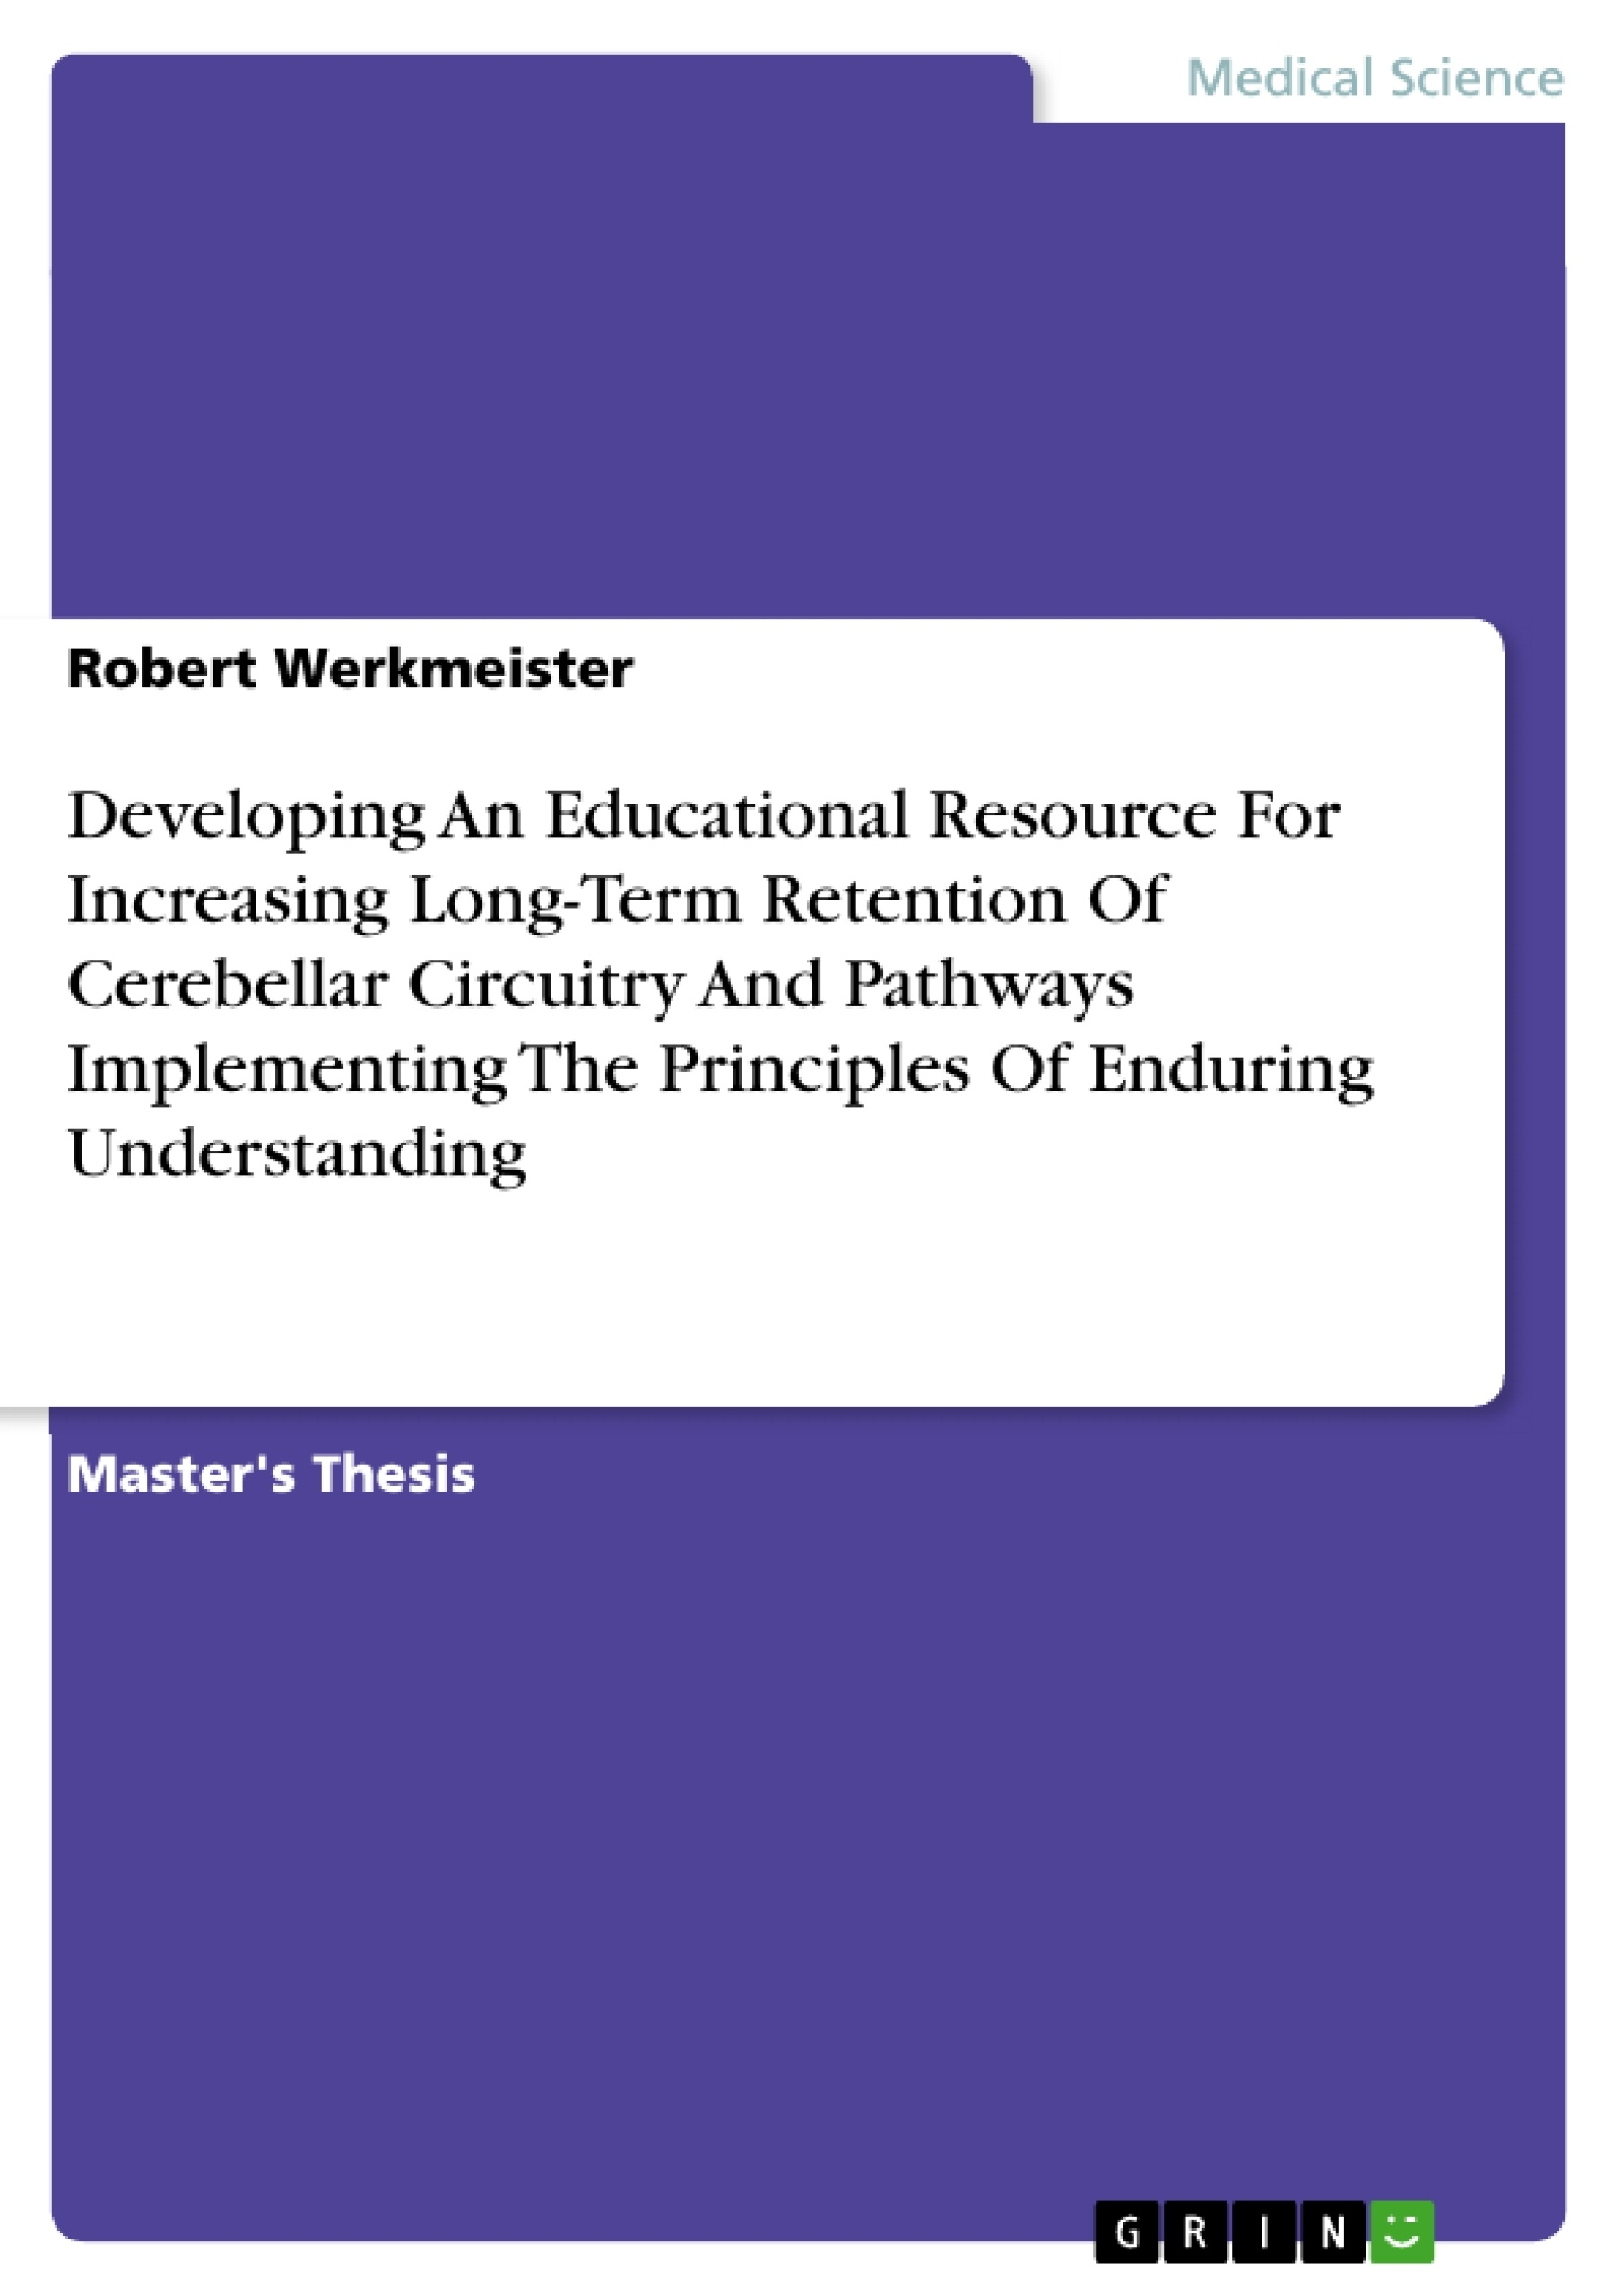 Title: Developing An Educational Resource For Increasing Long-Term Retention Of Cerebellar Circuitry And Pathways Implementing The Principles Of Enduring Understanding